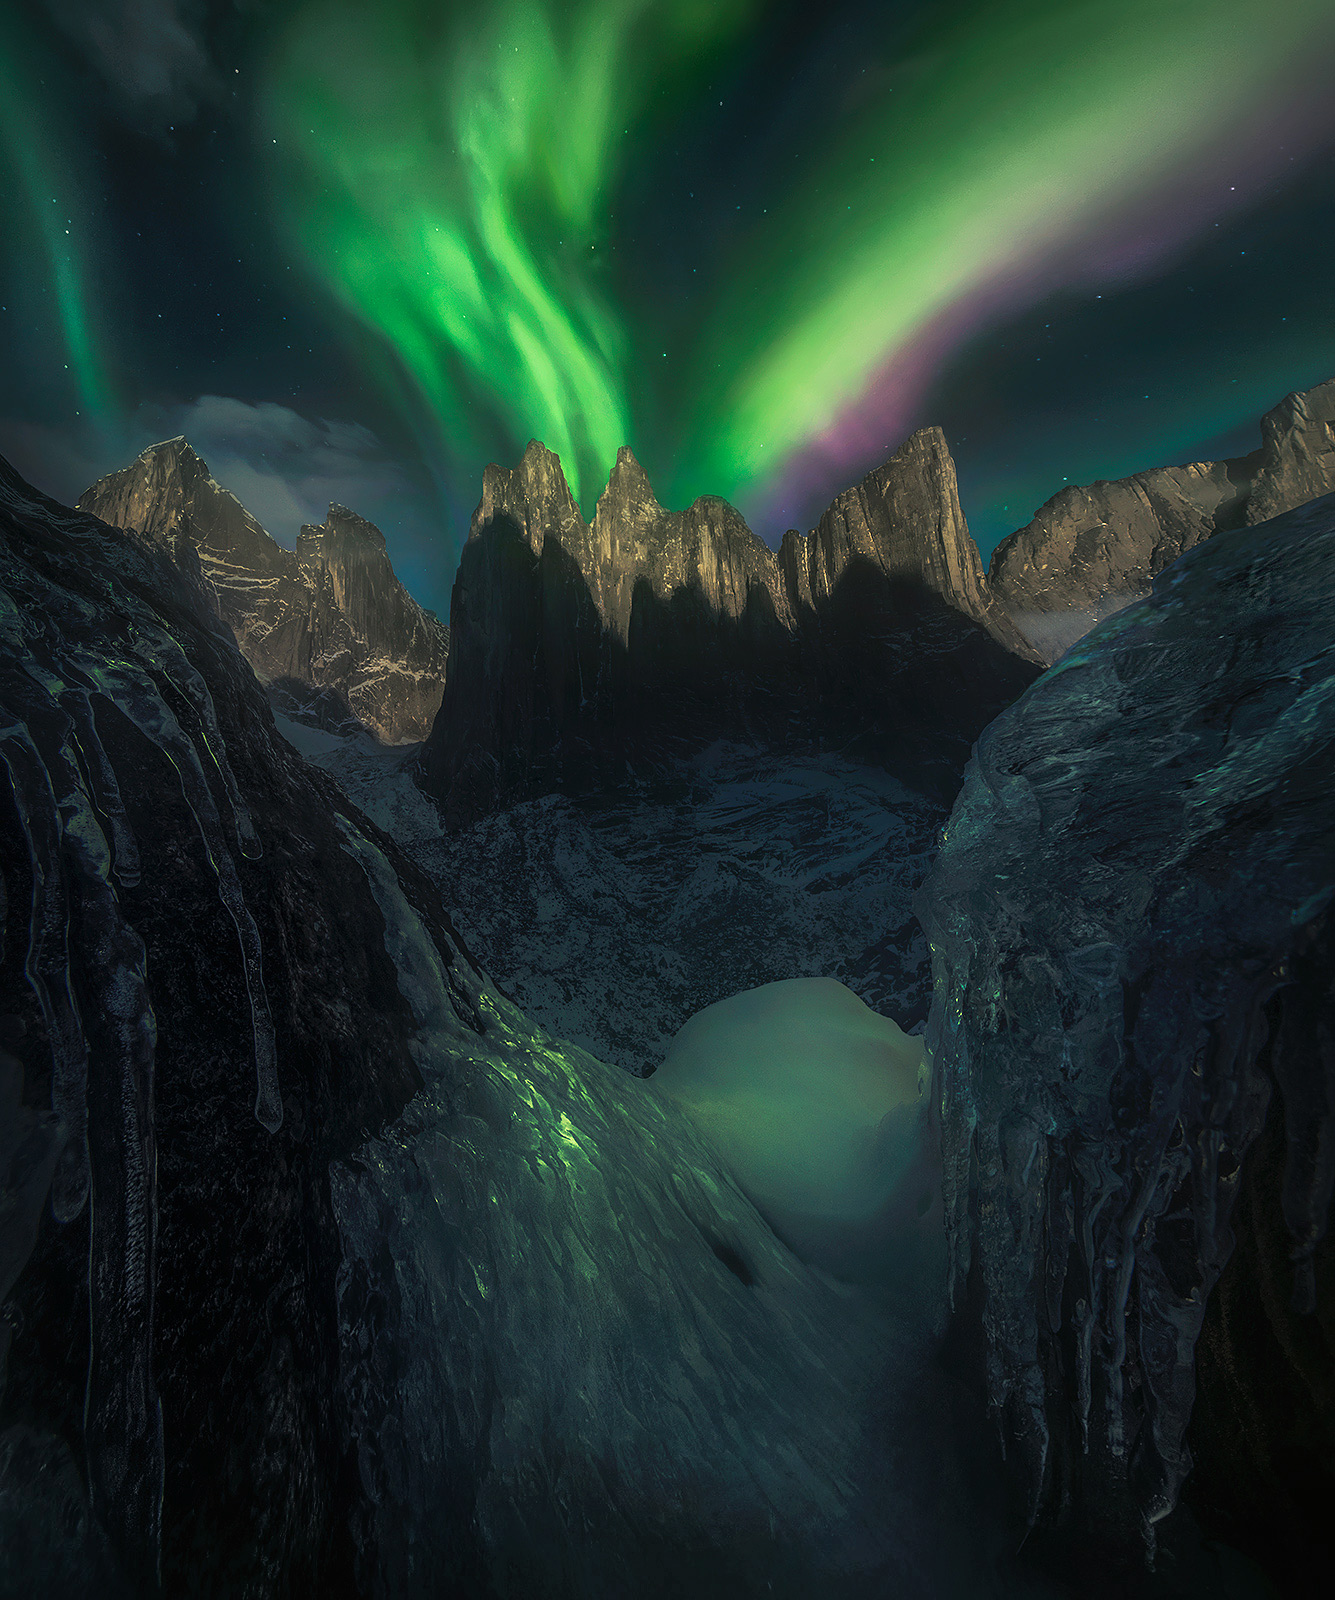 moonlight, aurora, peaks, cliffs, ragged, nahanni, northwest territories, Canada, arctic, photo